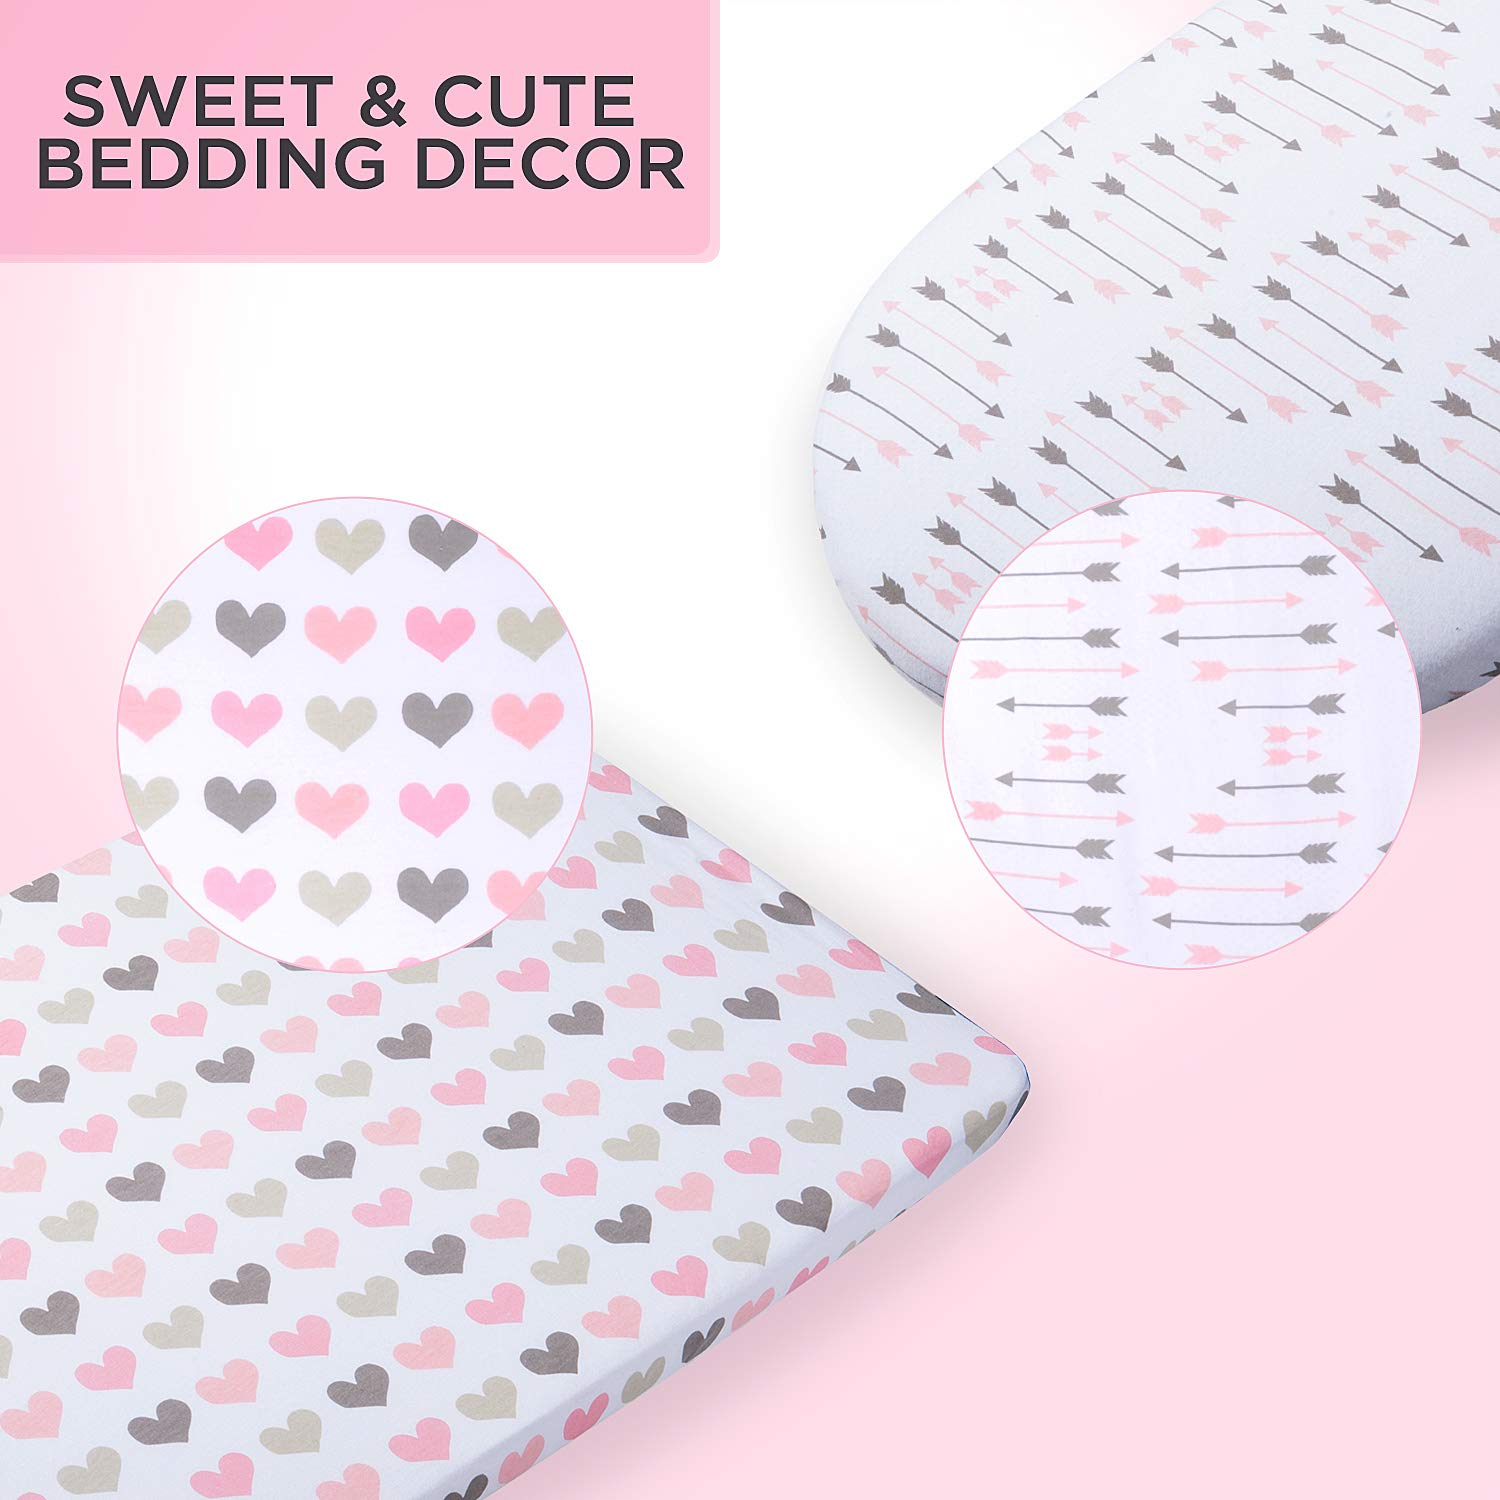 Fits Oval Halo Momcozy Universal Bassinet Sheets Set 2 Pack for Girls Pink Heart /& Arrows Ingenuity Fitted Elastic Design Chicco Lullago Arms Reach Soft /& Breathable 100/% Cotton